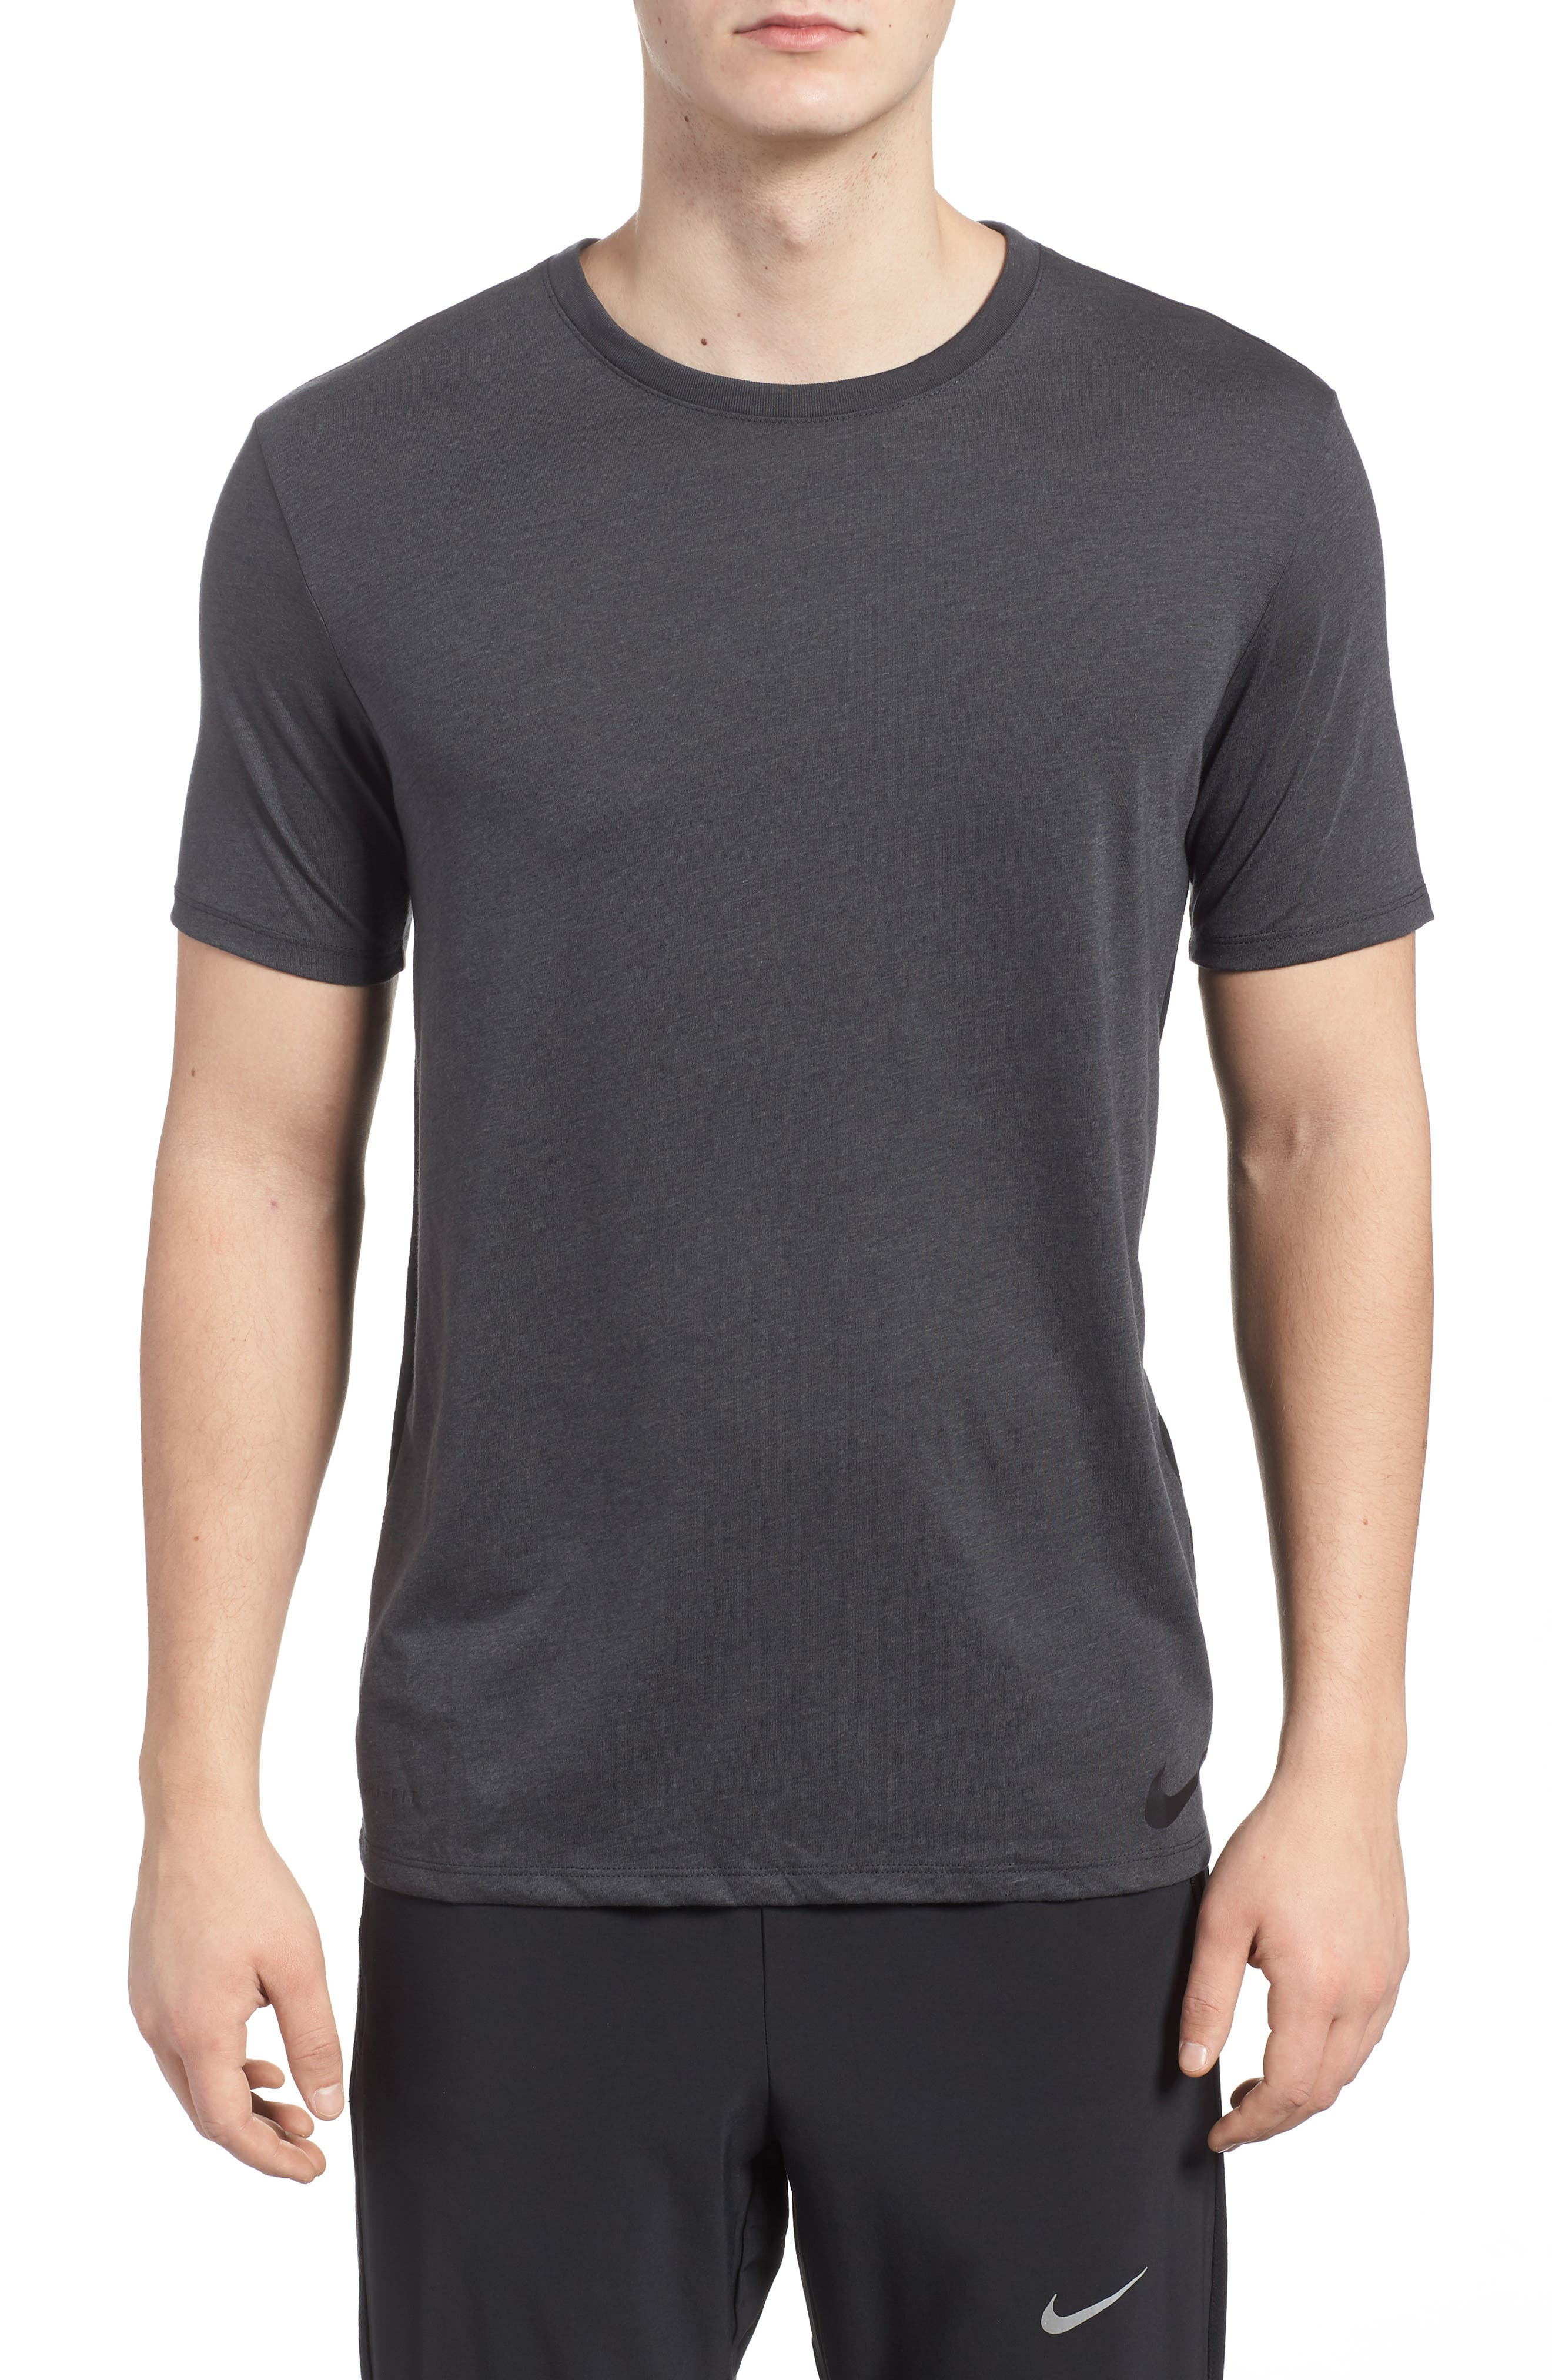 Training Dry Project X T-Shirt,                             Main thumbnail 1, color,                             Anthracite/ Black